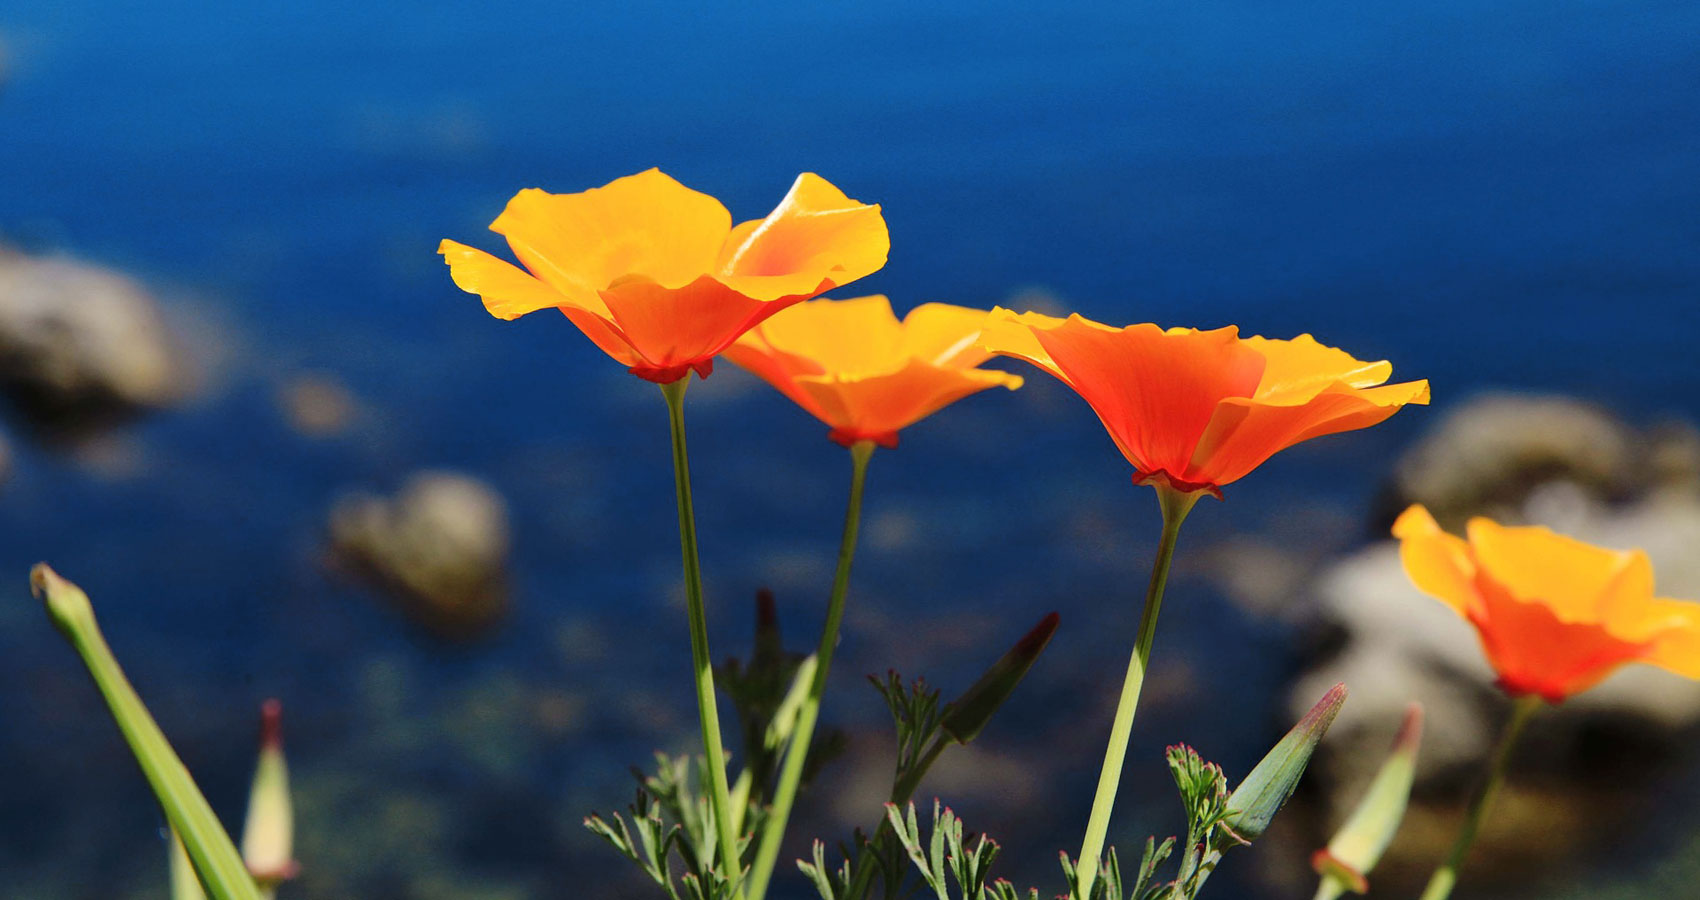 California Poppies, a poem written by Fotoula Reynolds at Spillwords.com